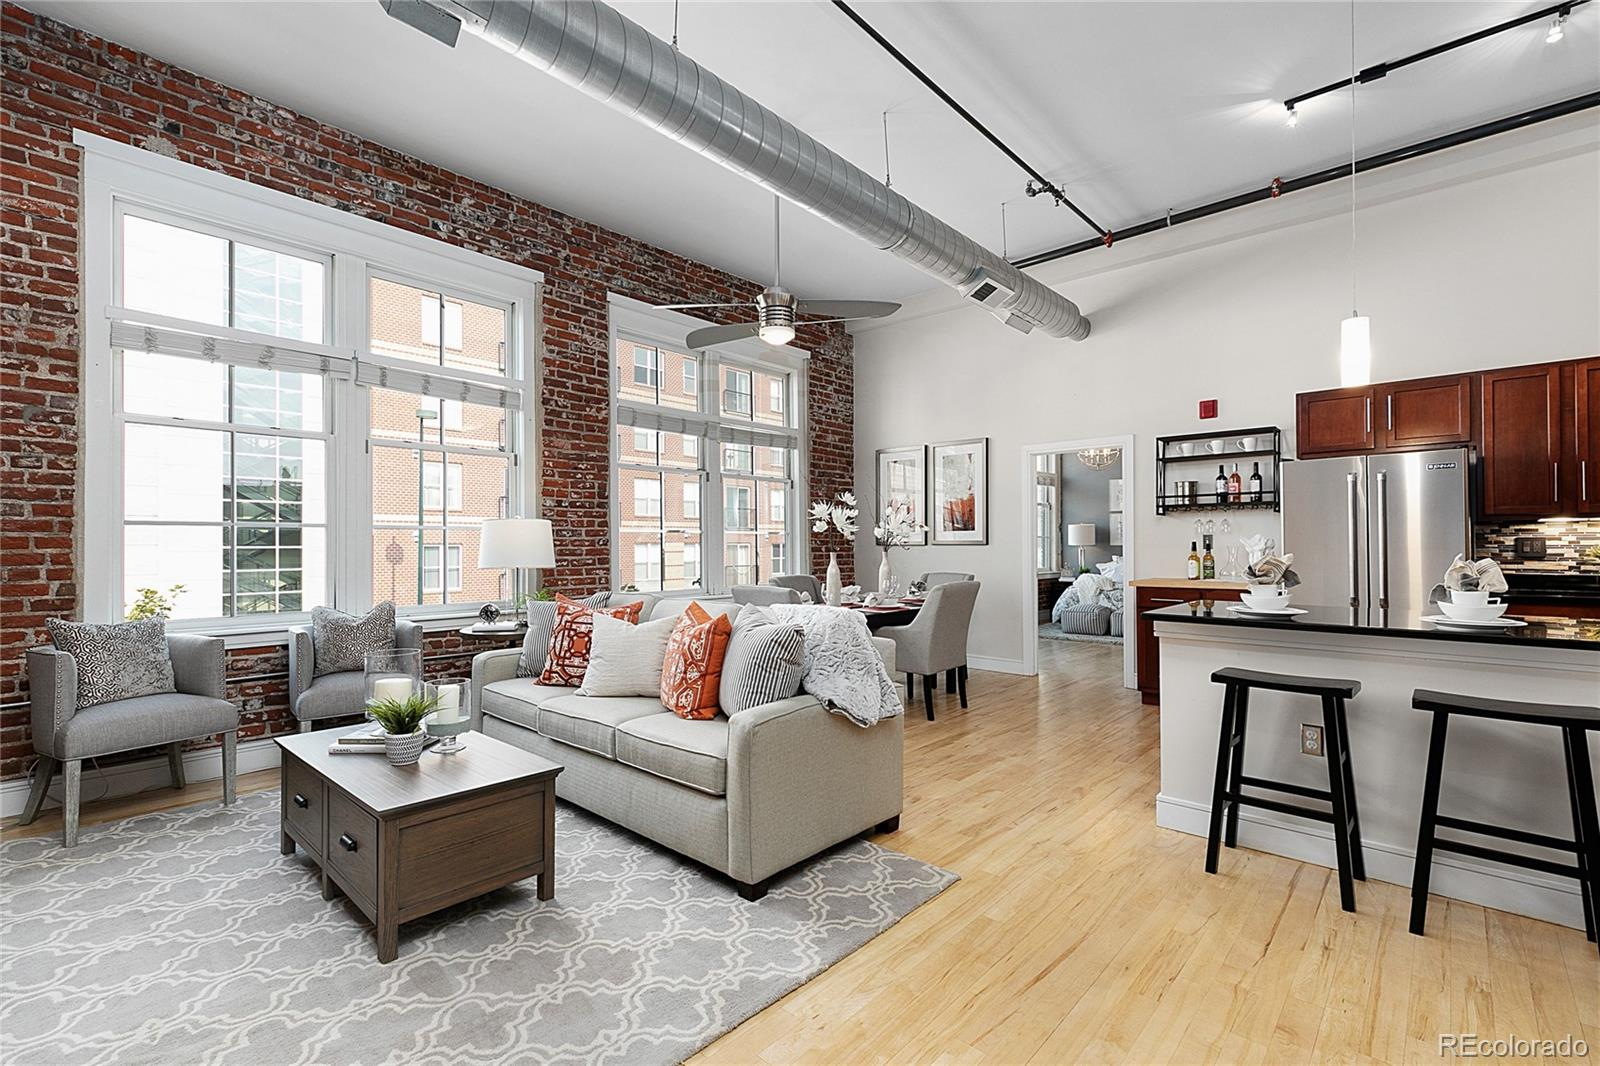 "Beautiful 2 bed/2 bath home in historic Silver State Lofts!  This home also includes a climate-controlled garage parking spot + air rights to build a private rooftop deck above the unit. Entering through the built-in Beetle Kill Pine urban mudroom (organization & shelving), the exposed bricks lead you to the main hearth – over 600 square feet of living area: gourmet kitchen (slab granite, JennAir + Bosch appliances), grand living, dining and custom laundry room – the epitome of livability and convenience.  An owners' wing with oversized master bedroom + brick + windows, attached bath with dual shower + vanity and massive closet are complimented by the second bedroom/office flex place + full bath provide the opportunity to create dual masters specific to this floor plan.  This loft has ""air-rights"" above, so a private rooftop deck could be your next endeavor – elevating this home to the next level (literally) in the heart of RiNo.  HOA includes 1GB WiFi for the unit and on both rooftops."